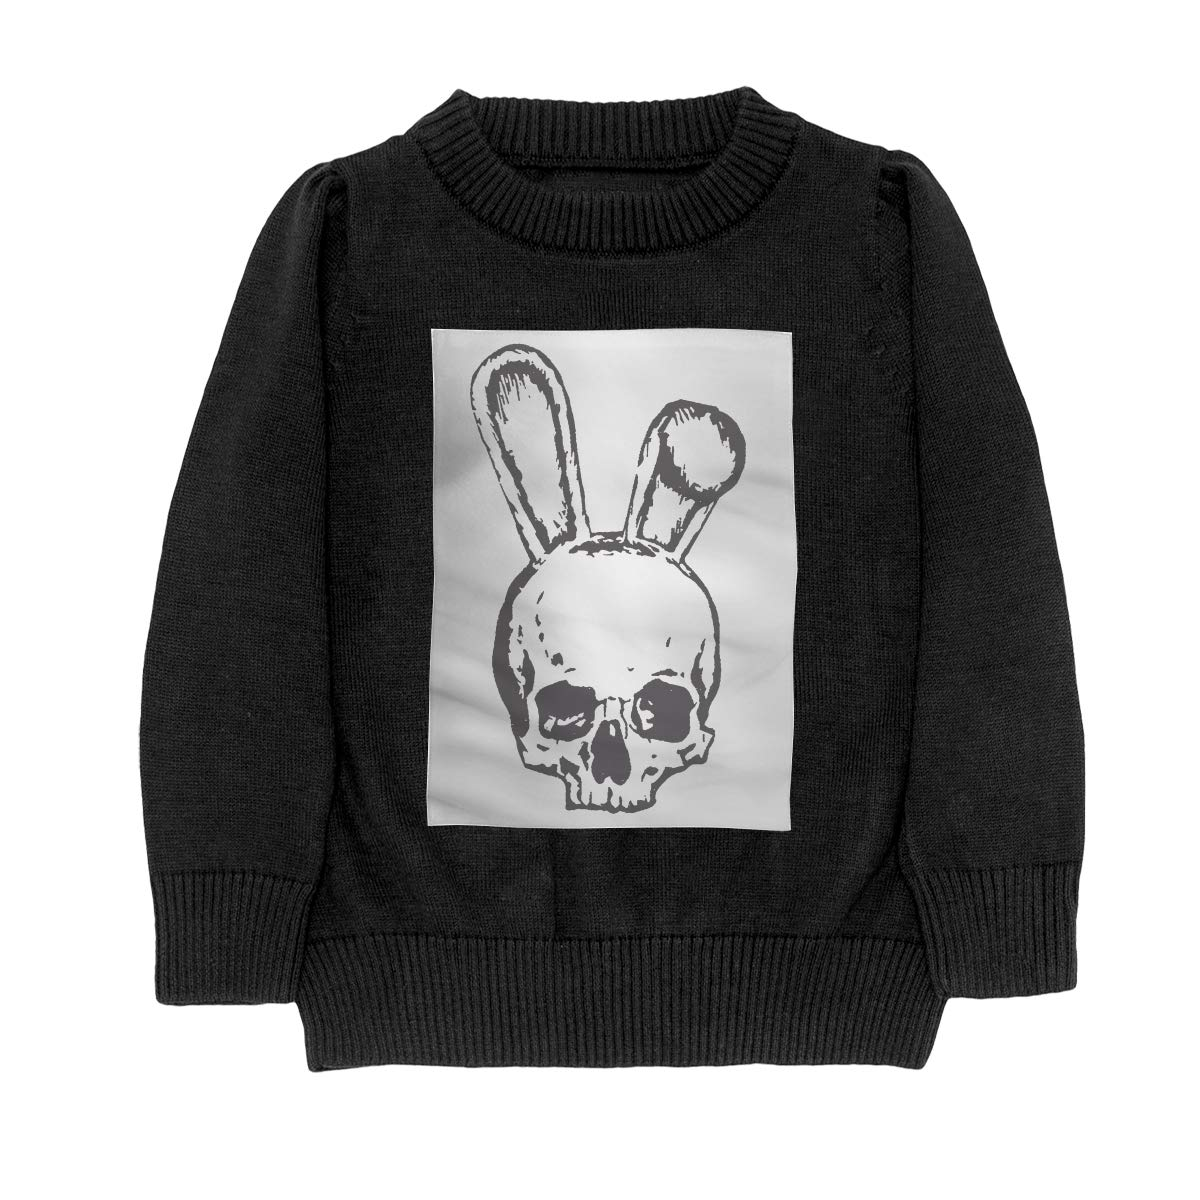 WWTBBJ-B Skull Bunny Ears Skull Pirate Casual Adolescent Boys /& Girls Unisex Sweater Keep Warm